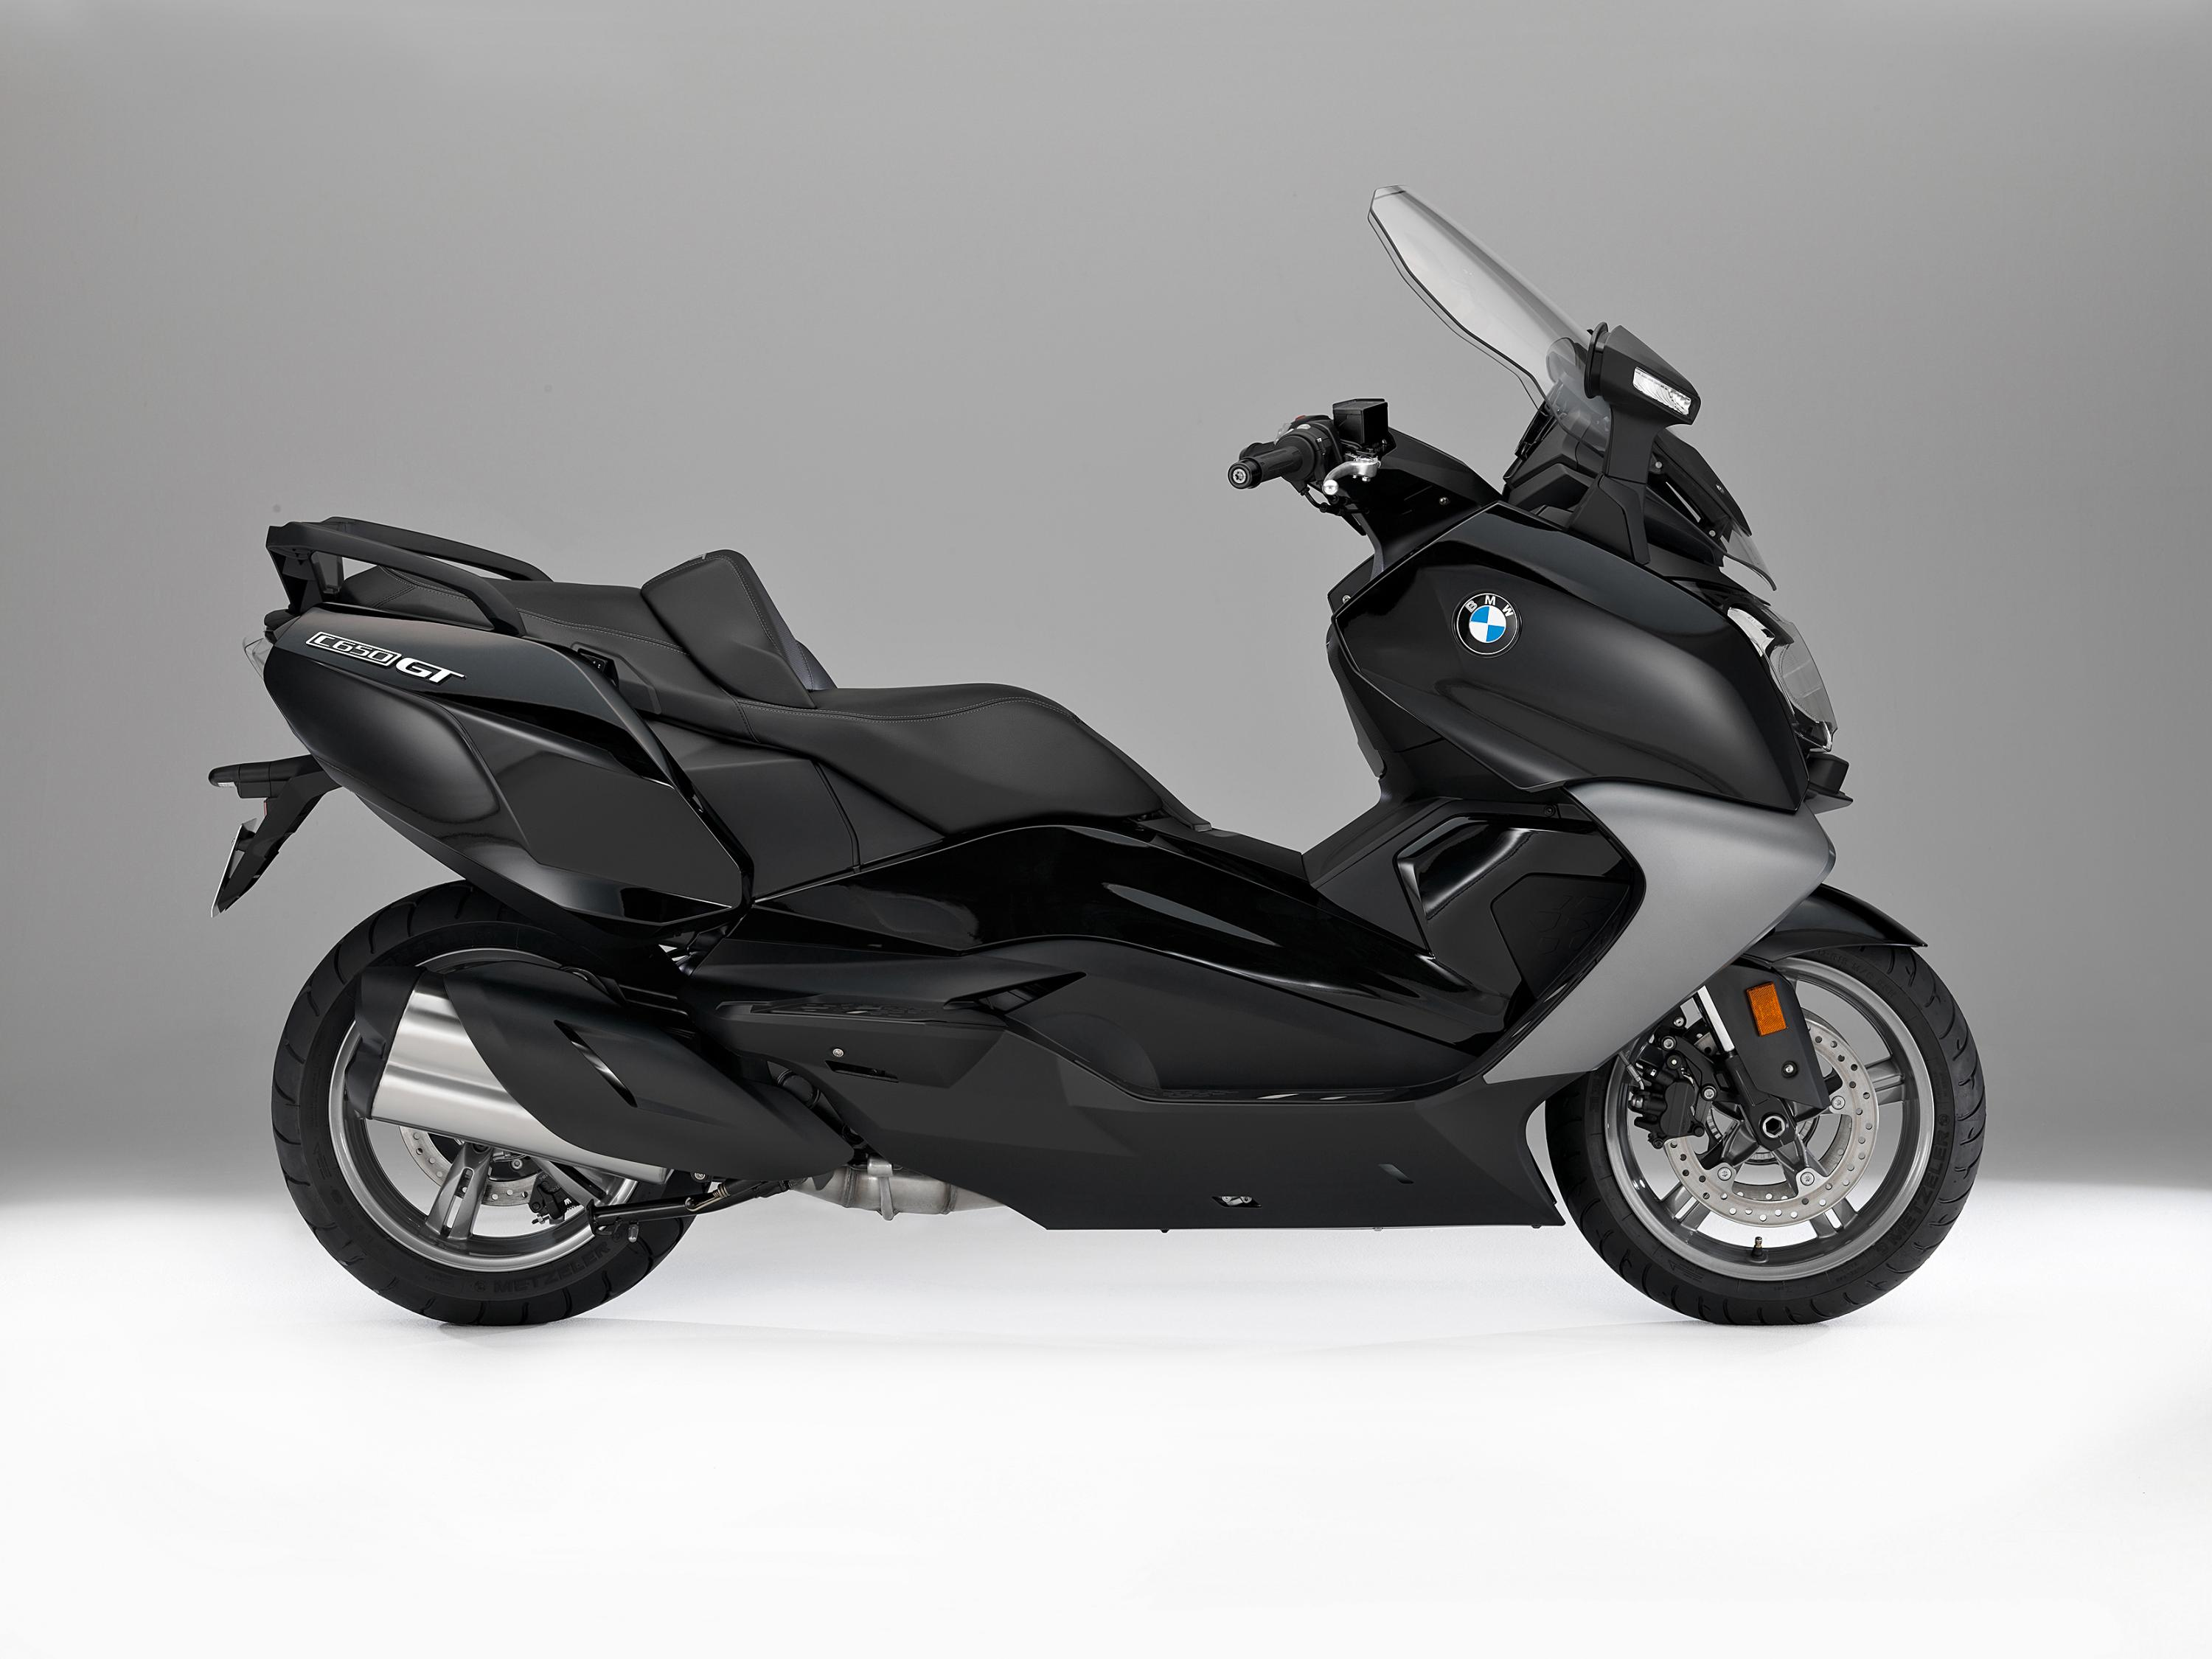 about expected releasing manufacturers pictures model new com maxi revealed as motorcycle information has of bmw electric e concept a unveils news we scooter highres